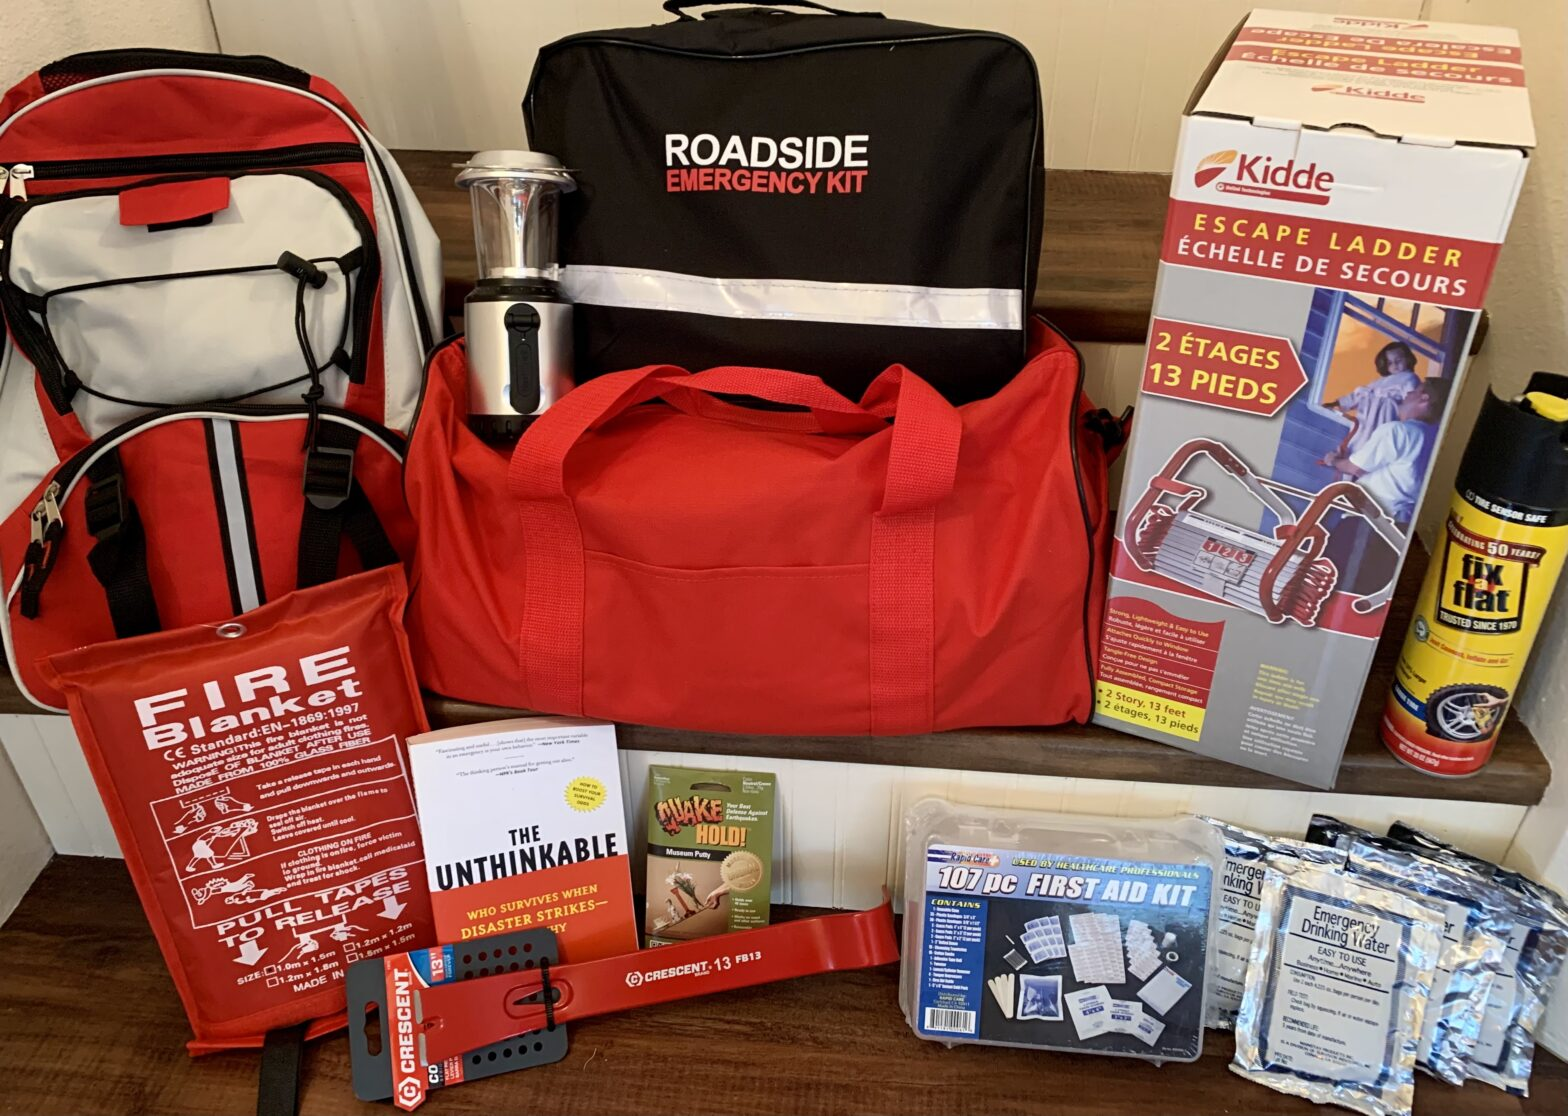 Several emergency kits and items displayed